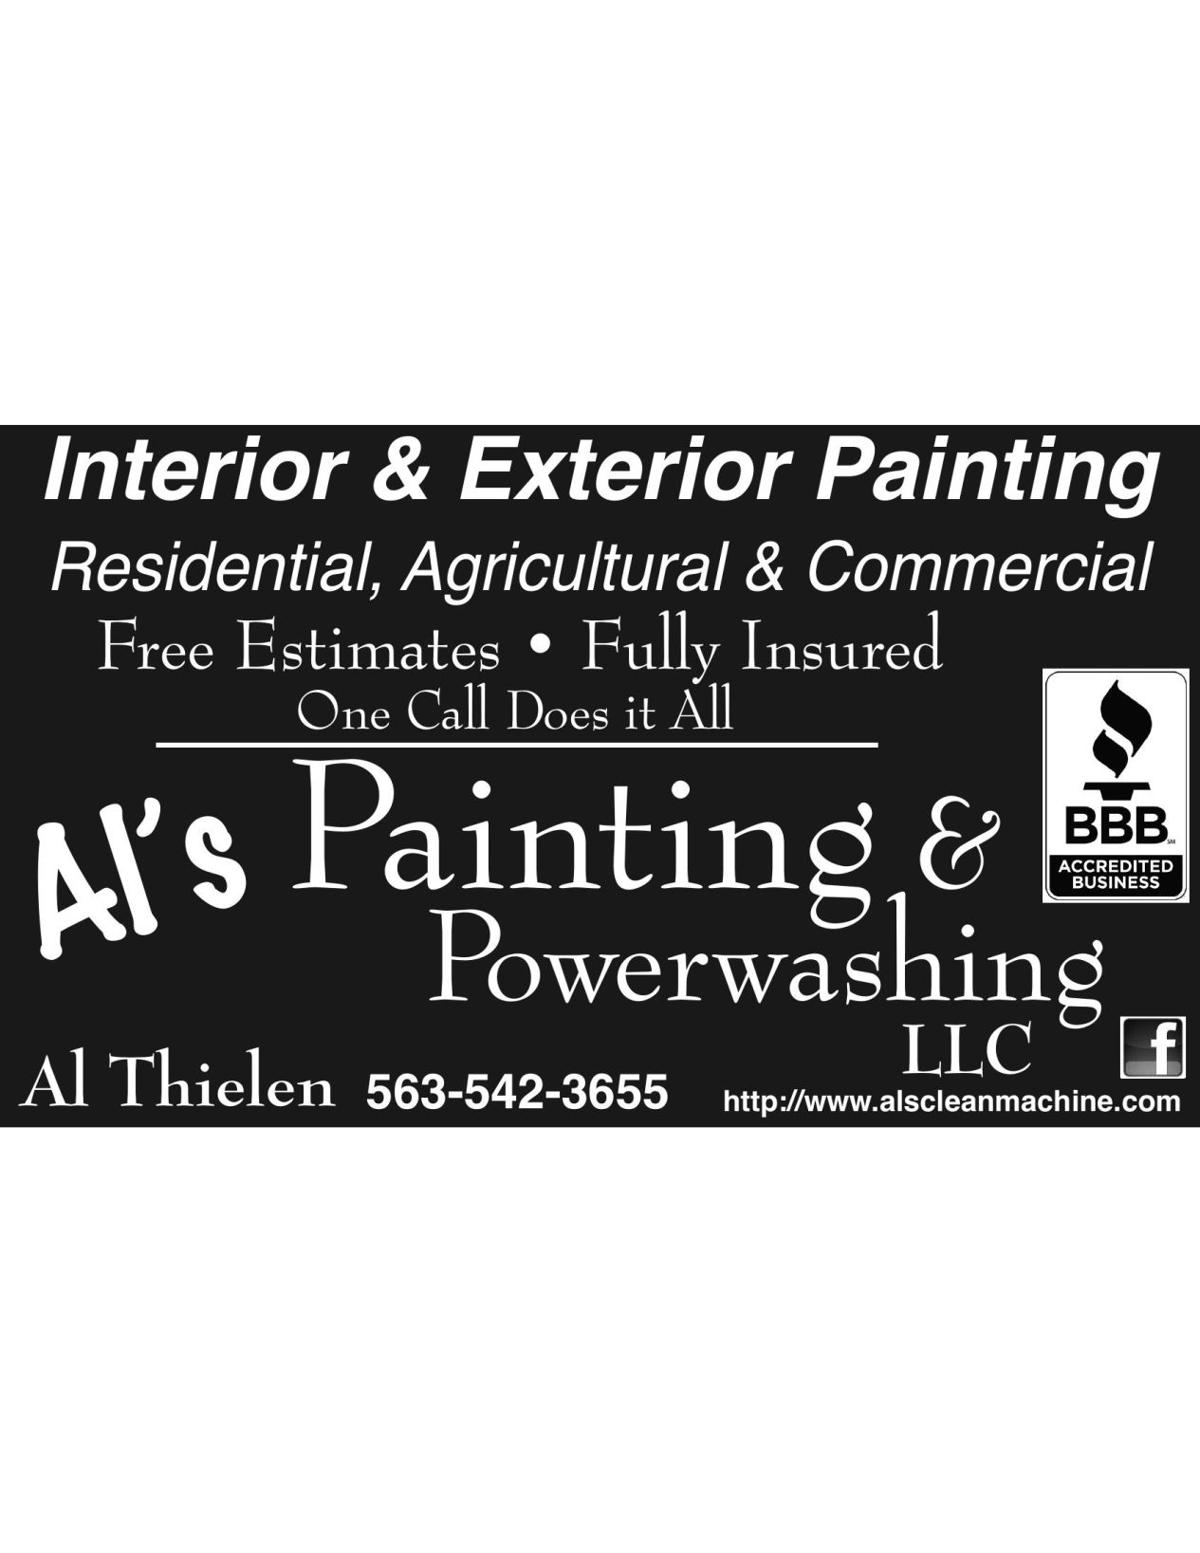 Al's Painting & Powerwashing LLC